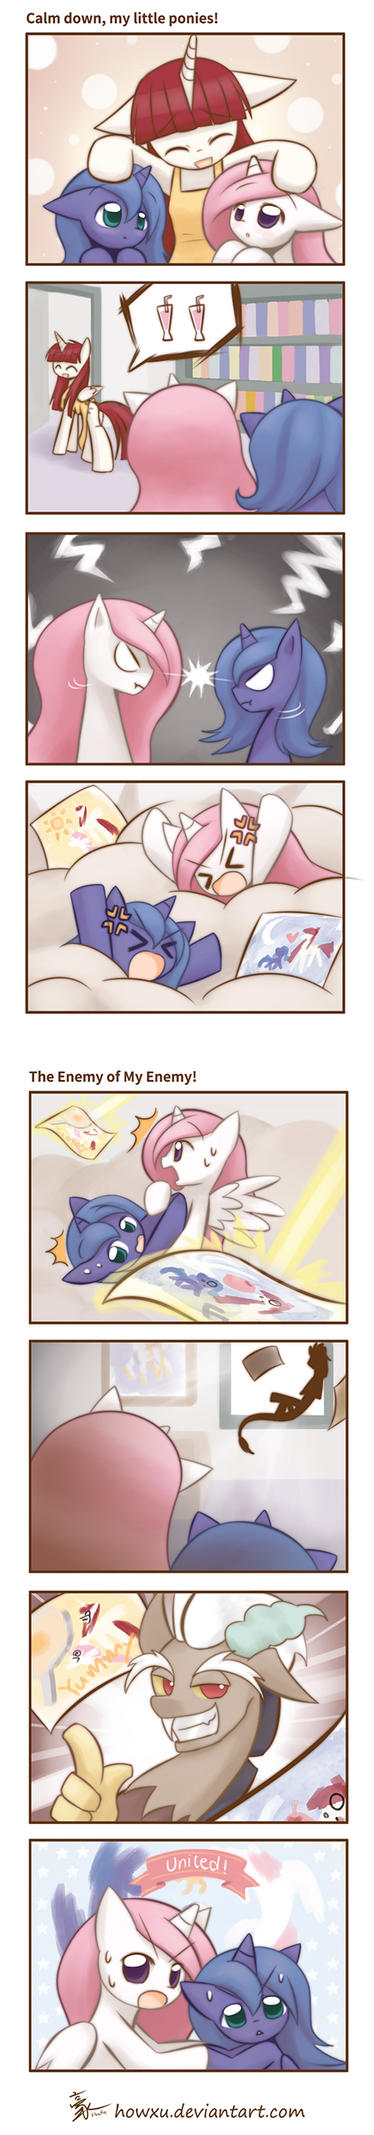 Good old days p3 by HowXu